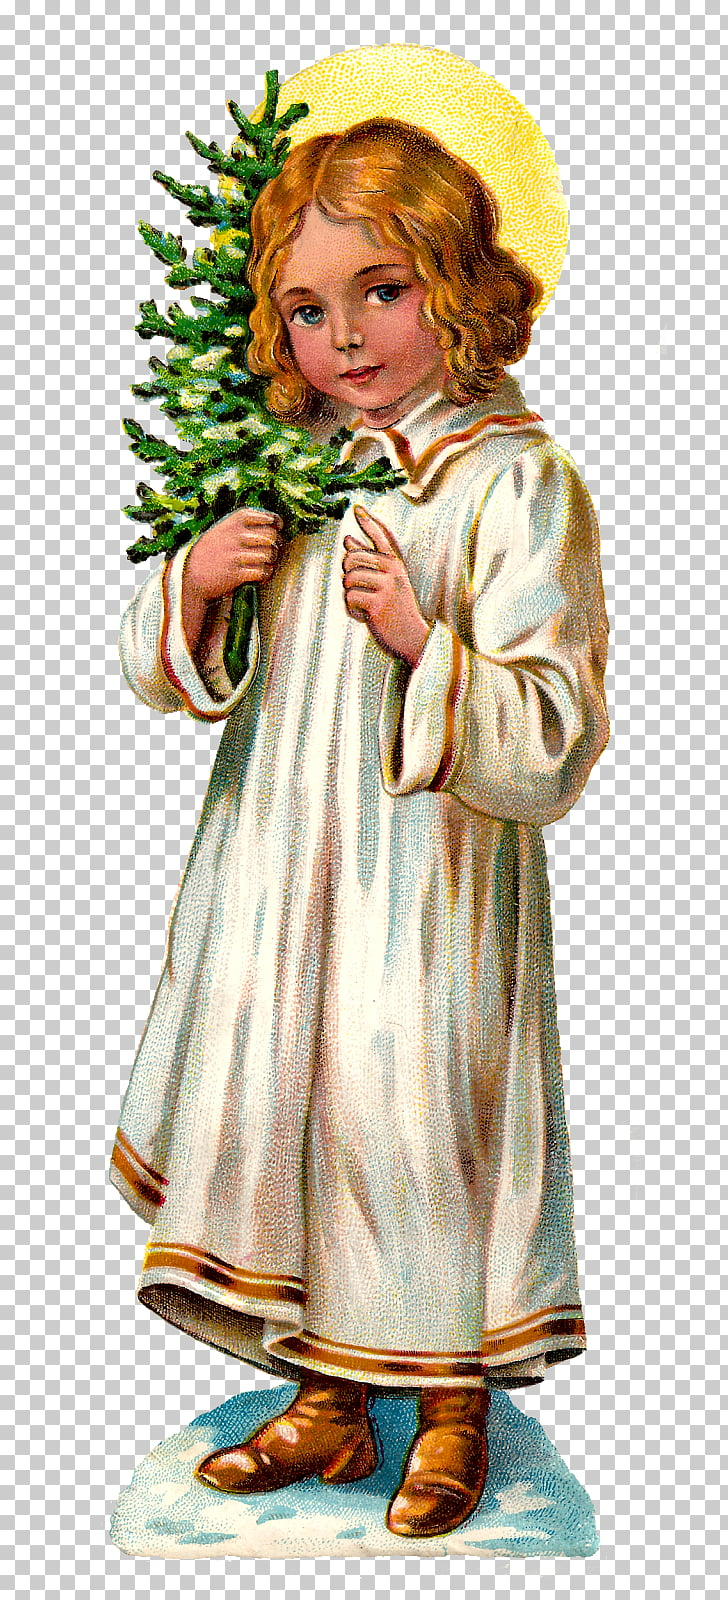 Angel Christmas tree Christkind, angel PNG clipart.